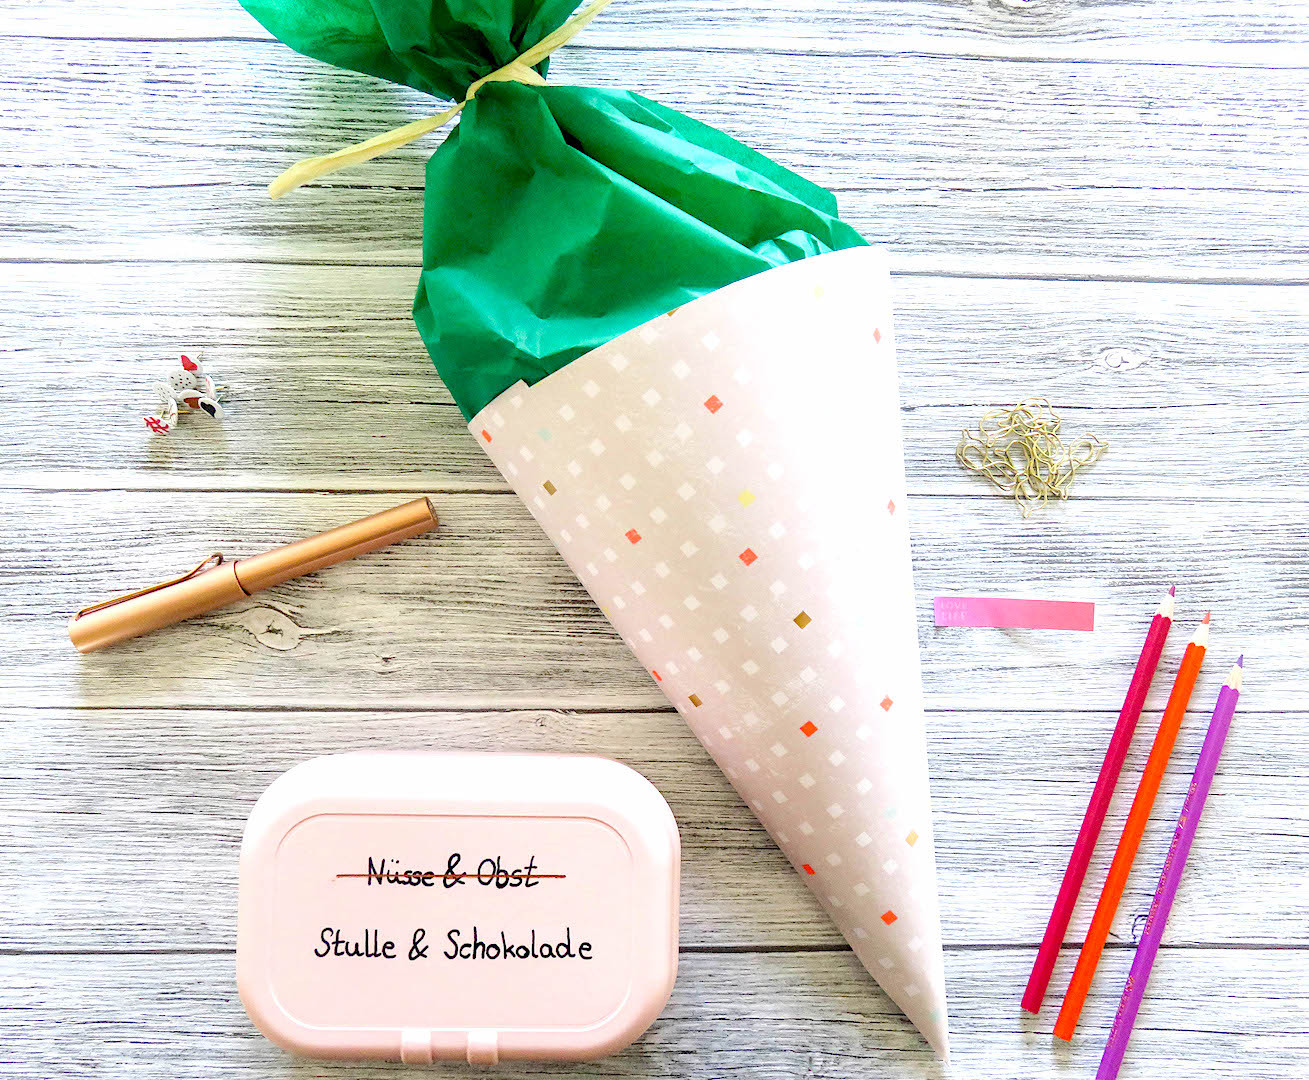 Coole Diy Ideen  back to school 4 coole DIY Ideen für den Schulanfang